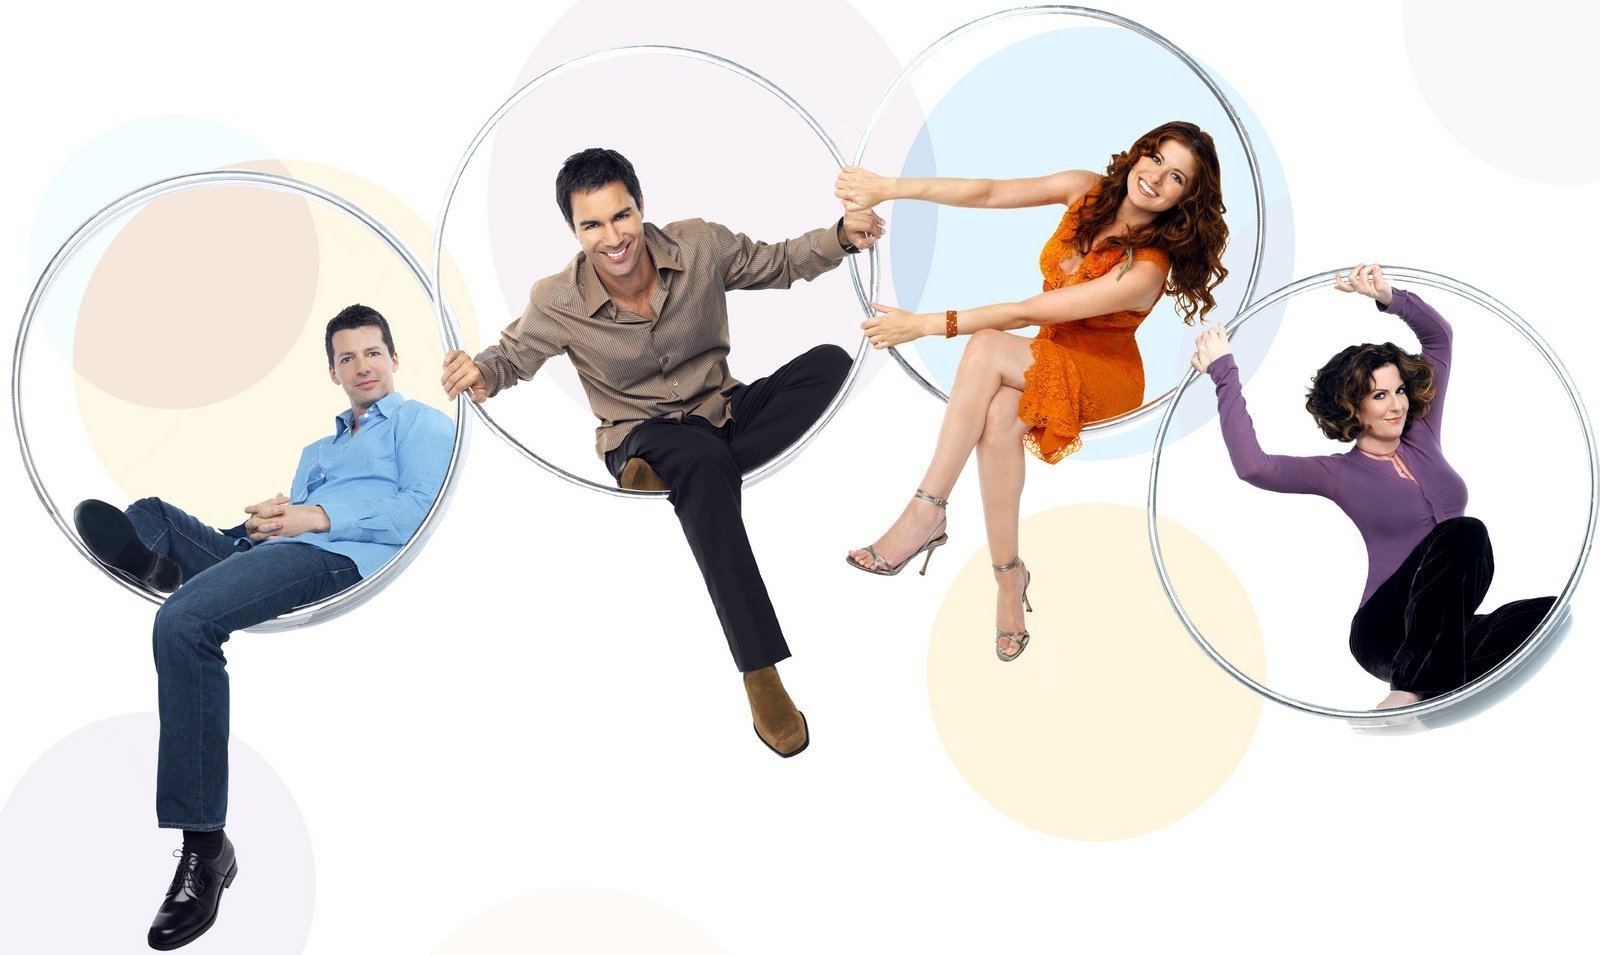 Sean Hayes kao Jack, Eric McCormack kao Will, Debra Messing kao Grace i Megan Mullally as Karen